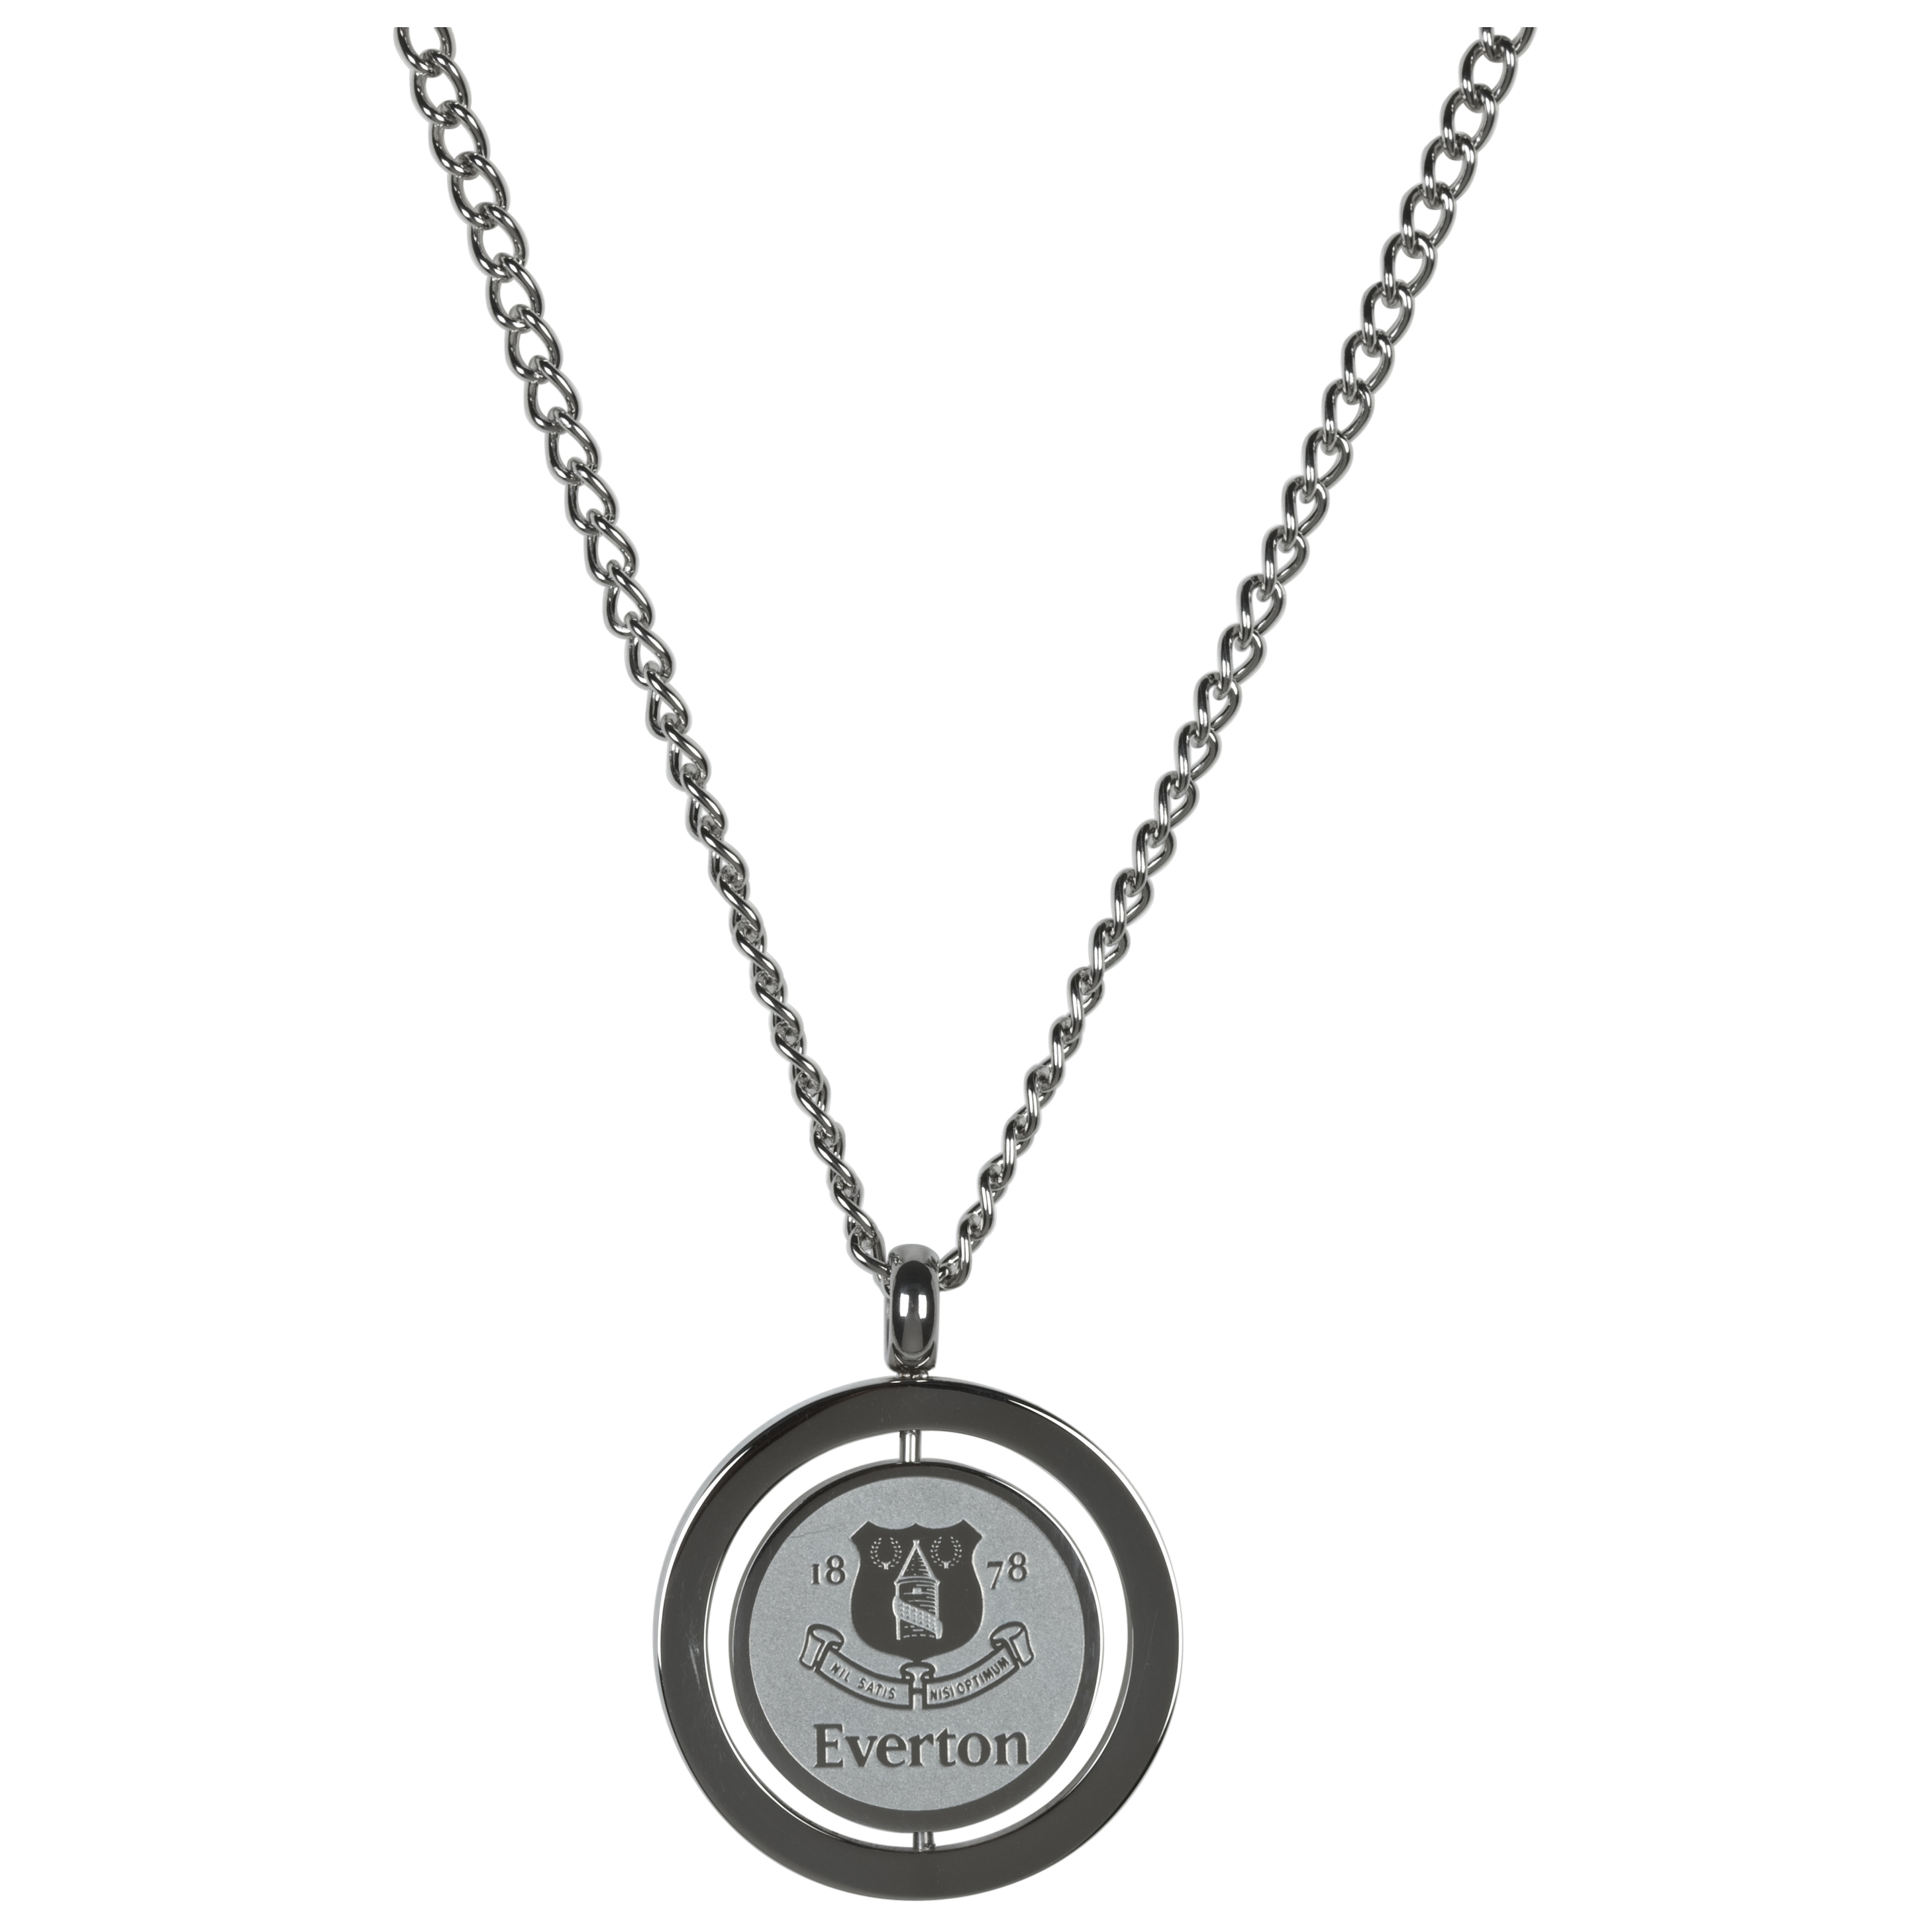 Everton Stainless Steel Spinner Pendant